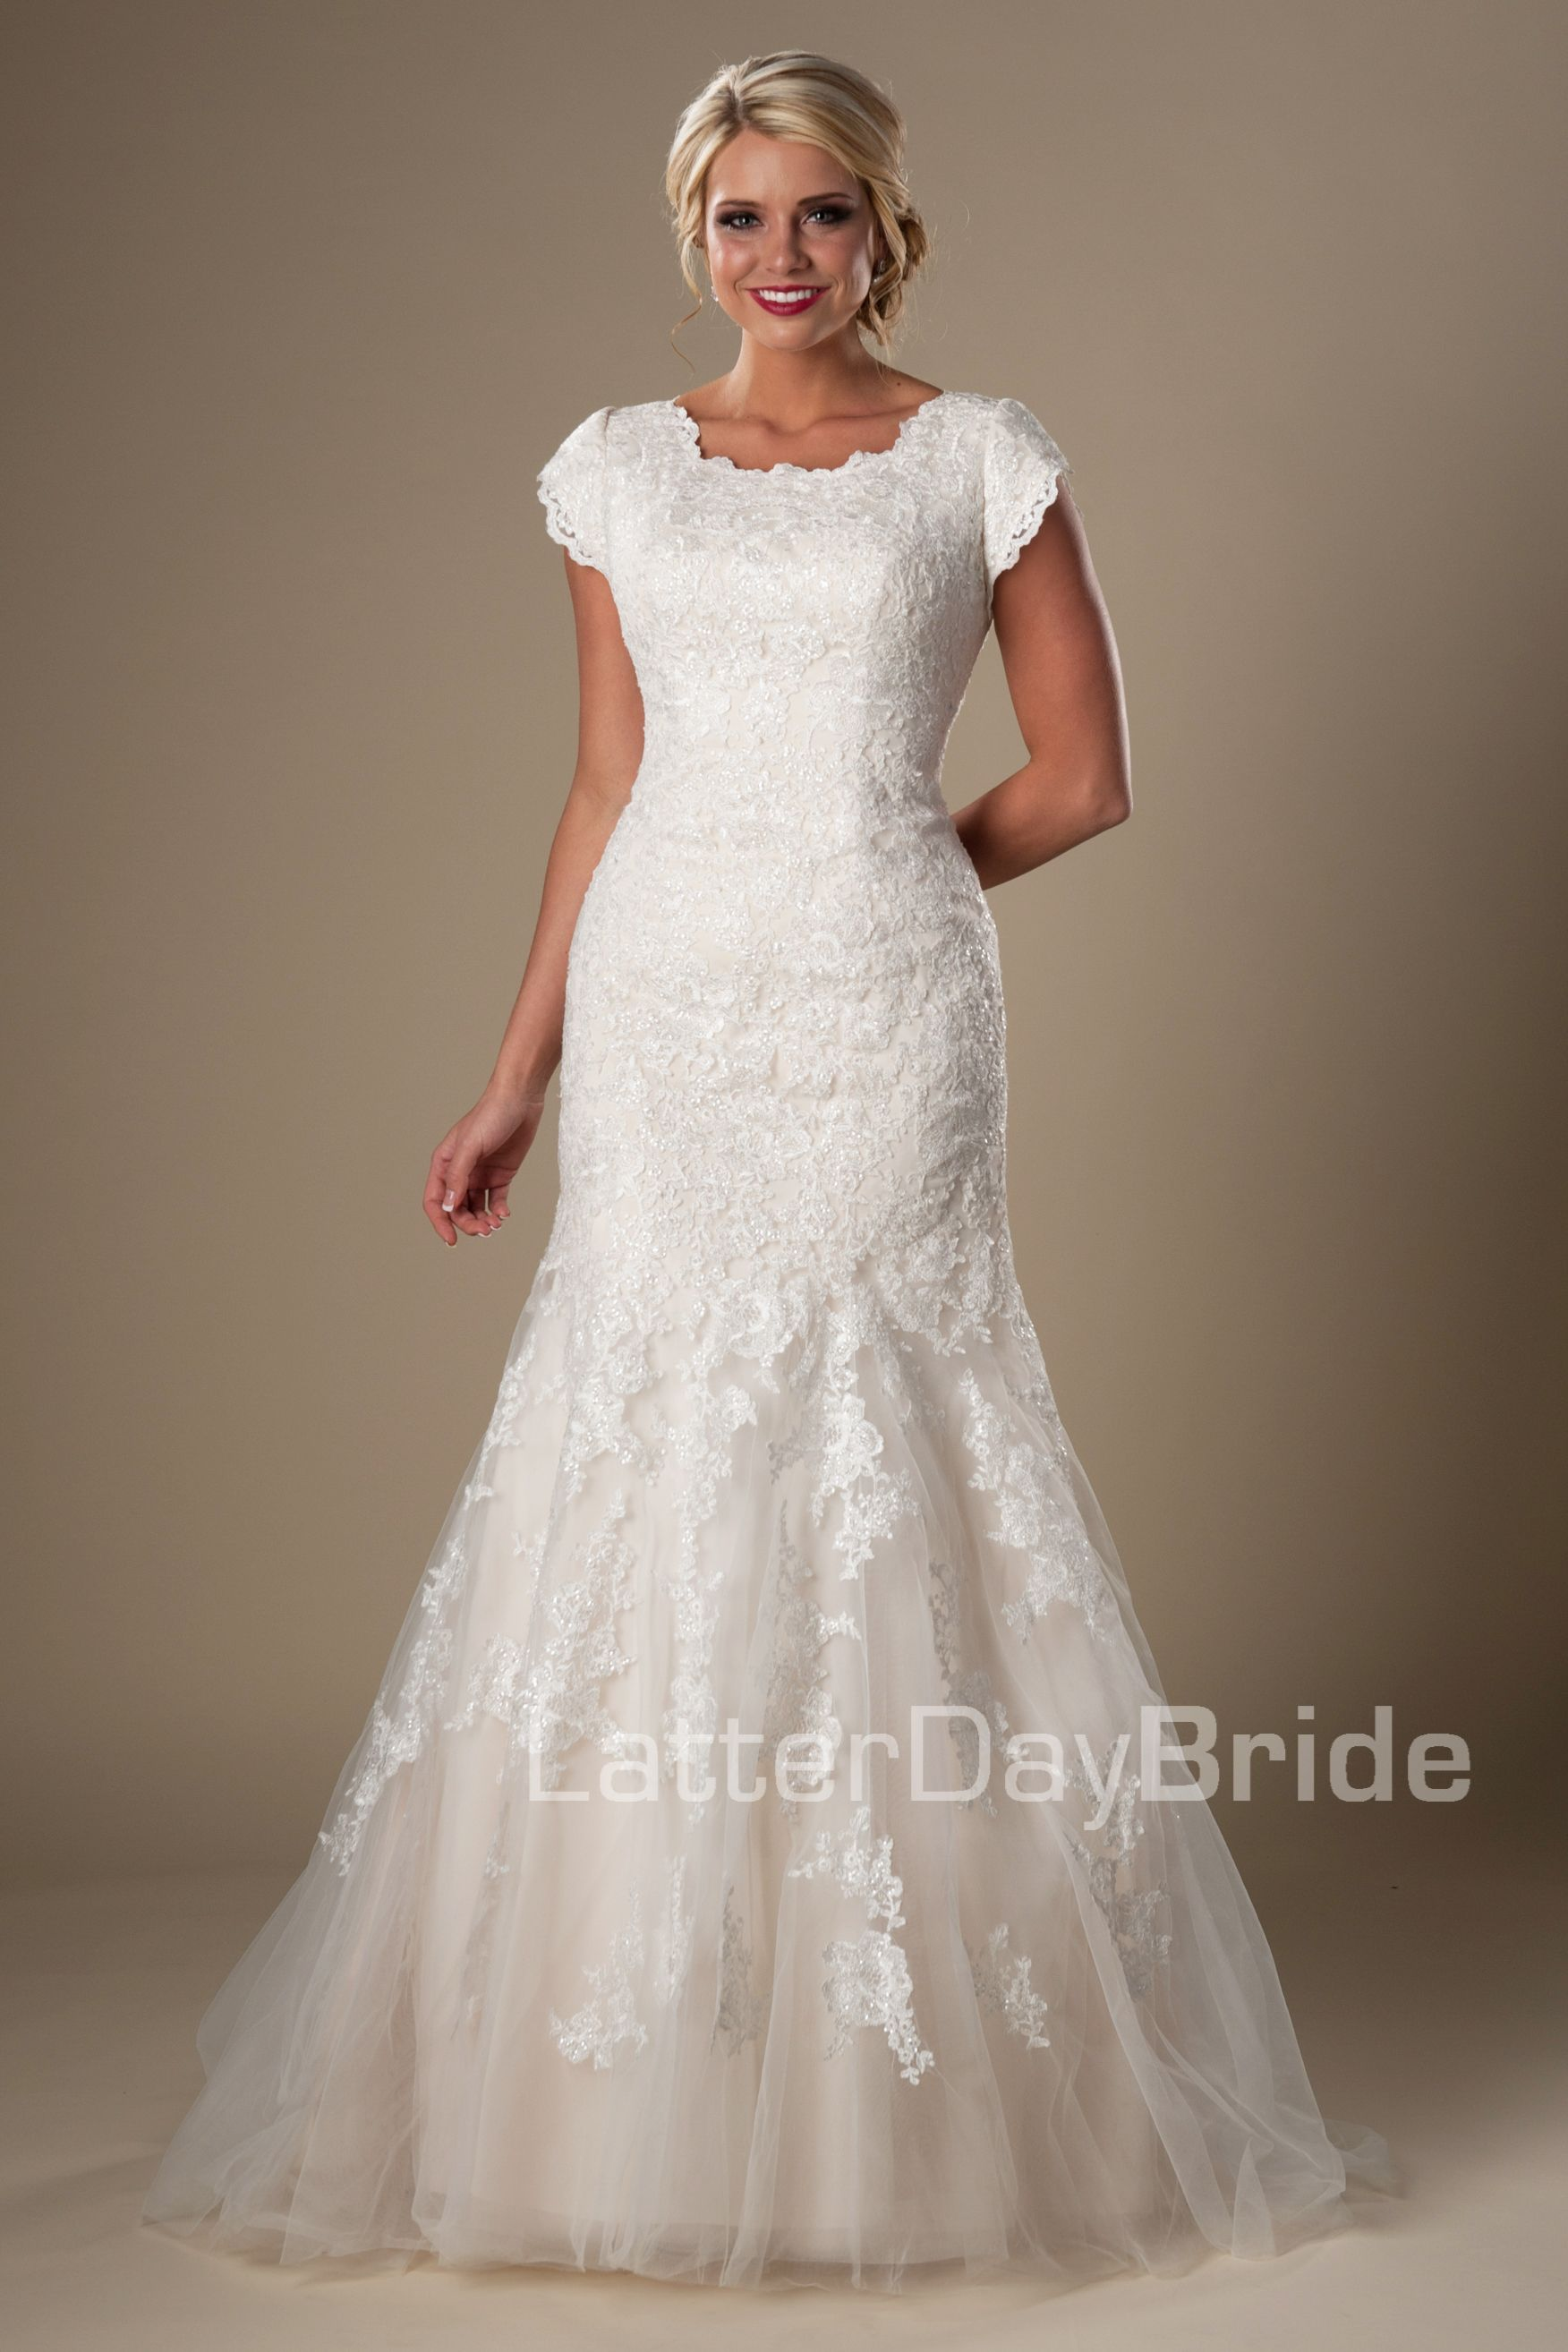 Lds Wedding Dress Stores In Utah : Berkeley modest lace wedding dress latterdaybride